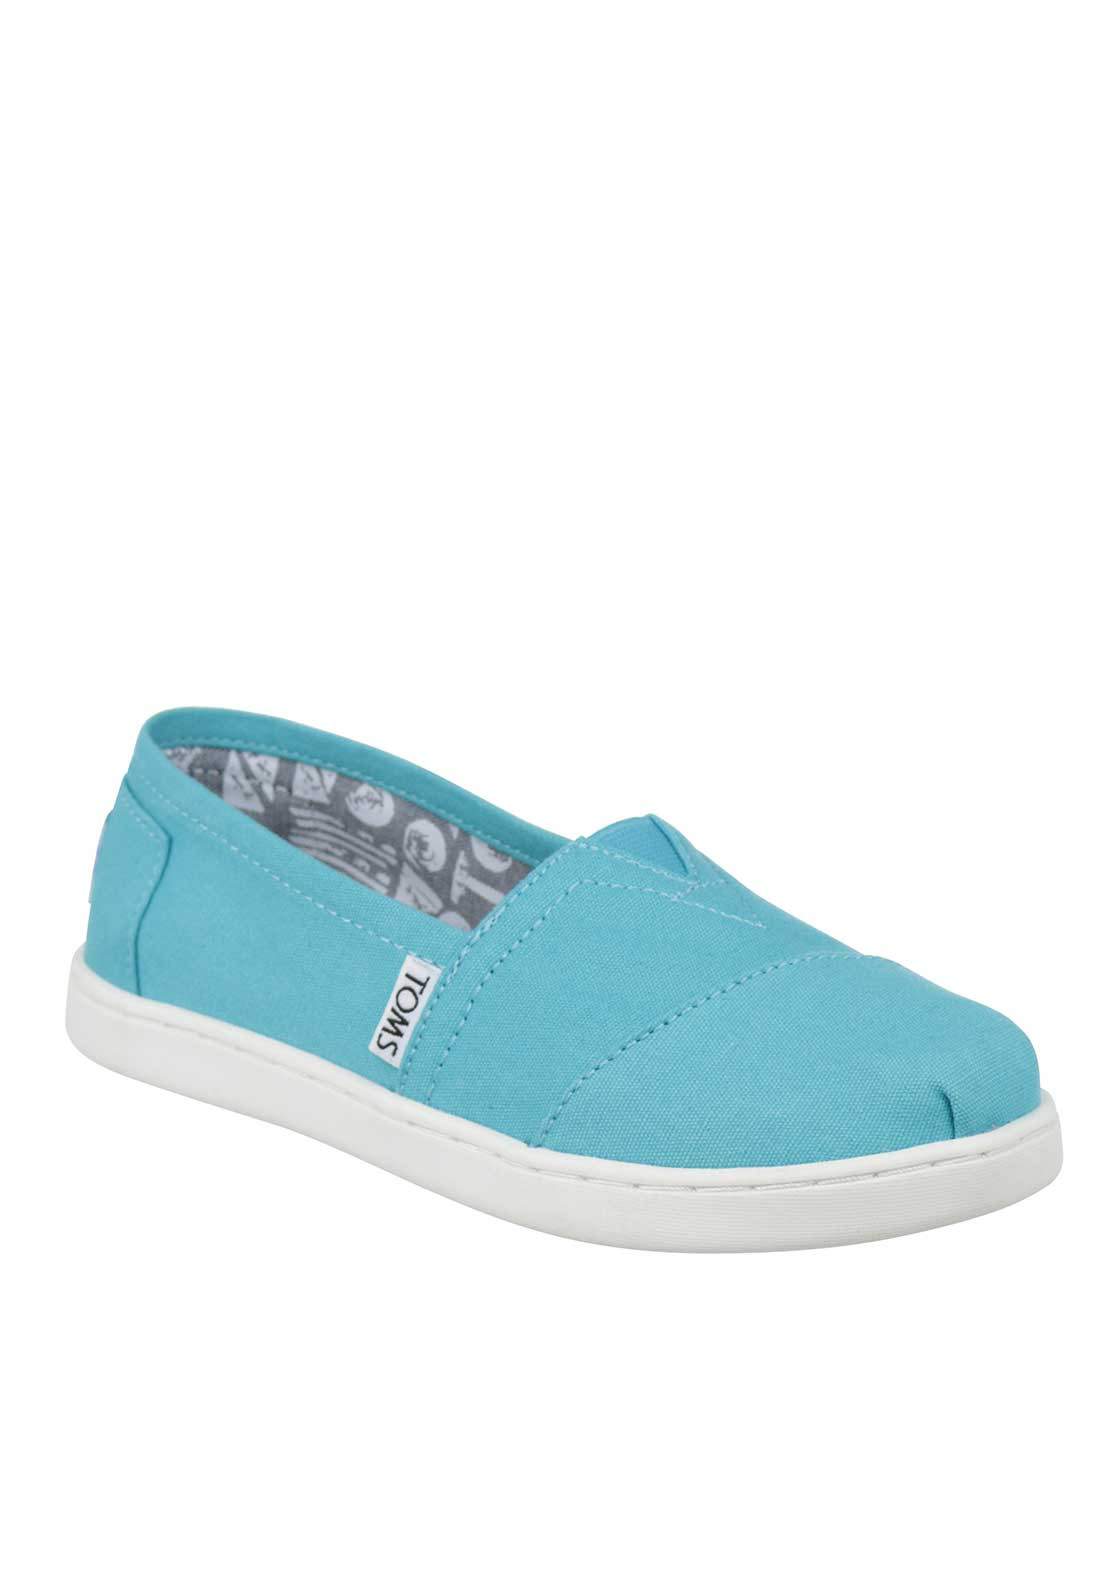 TOMS Kids Classics Slip on Canvas Shoes, Blue